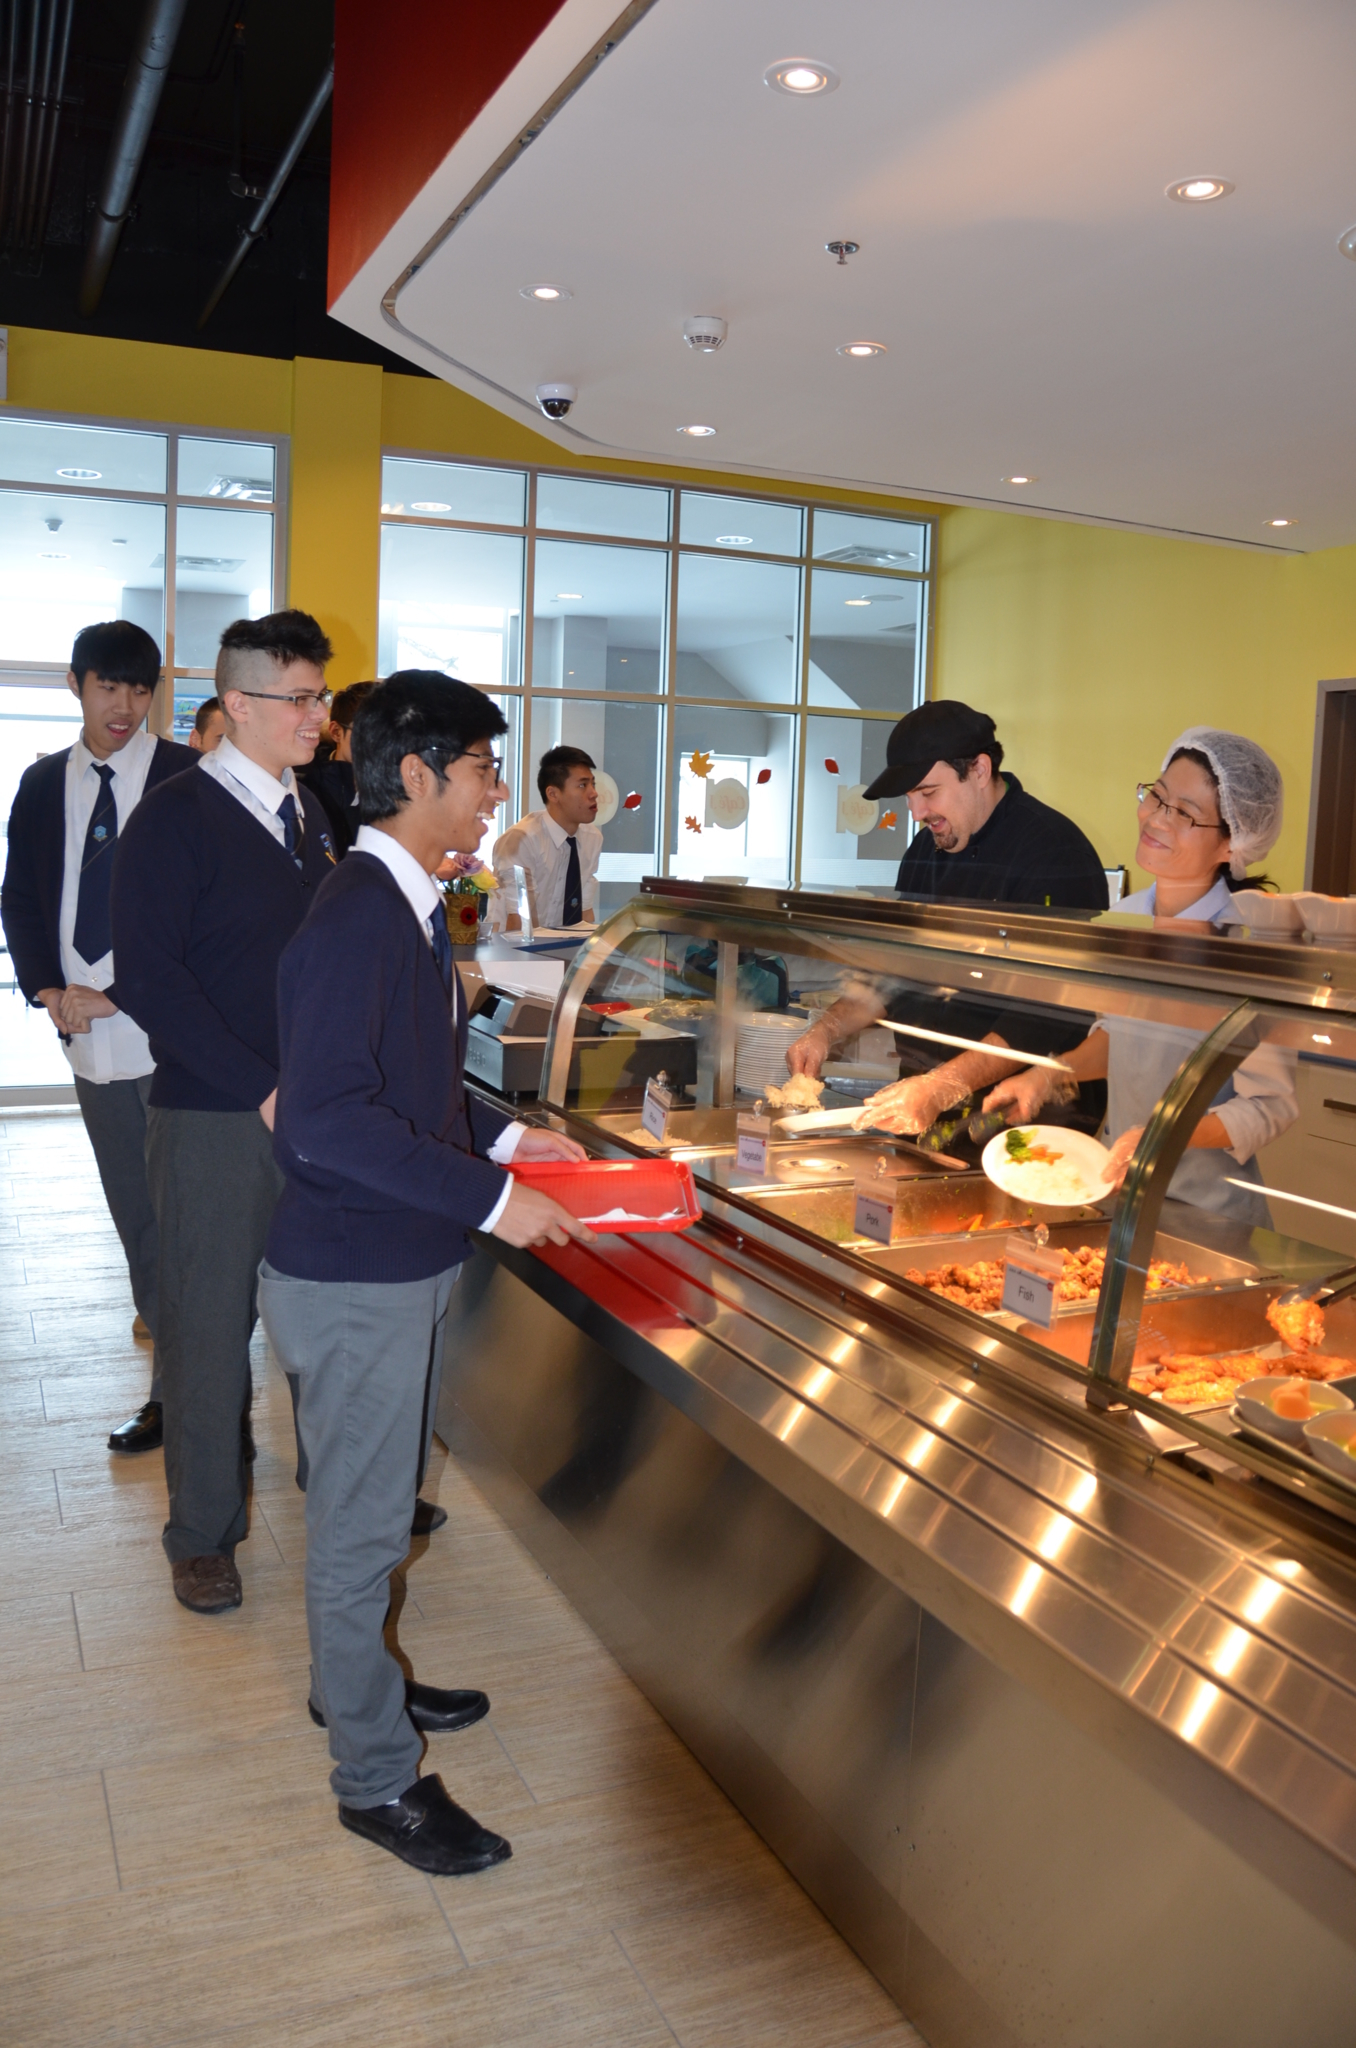 J Addison School in Markham: J. Addison's Cafe J serves up delicious and nutritious meals 3 times a day, 7 days a week.